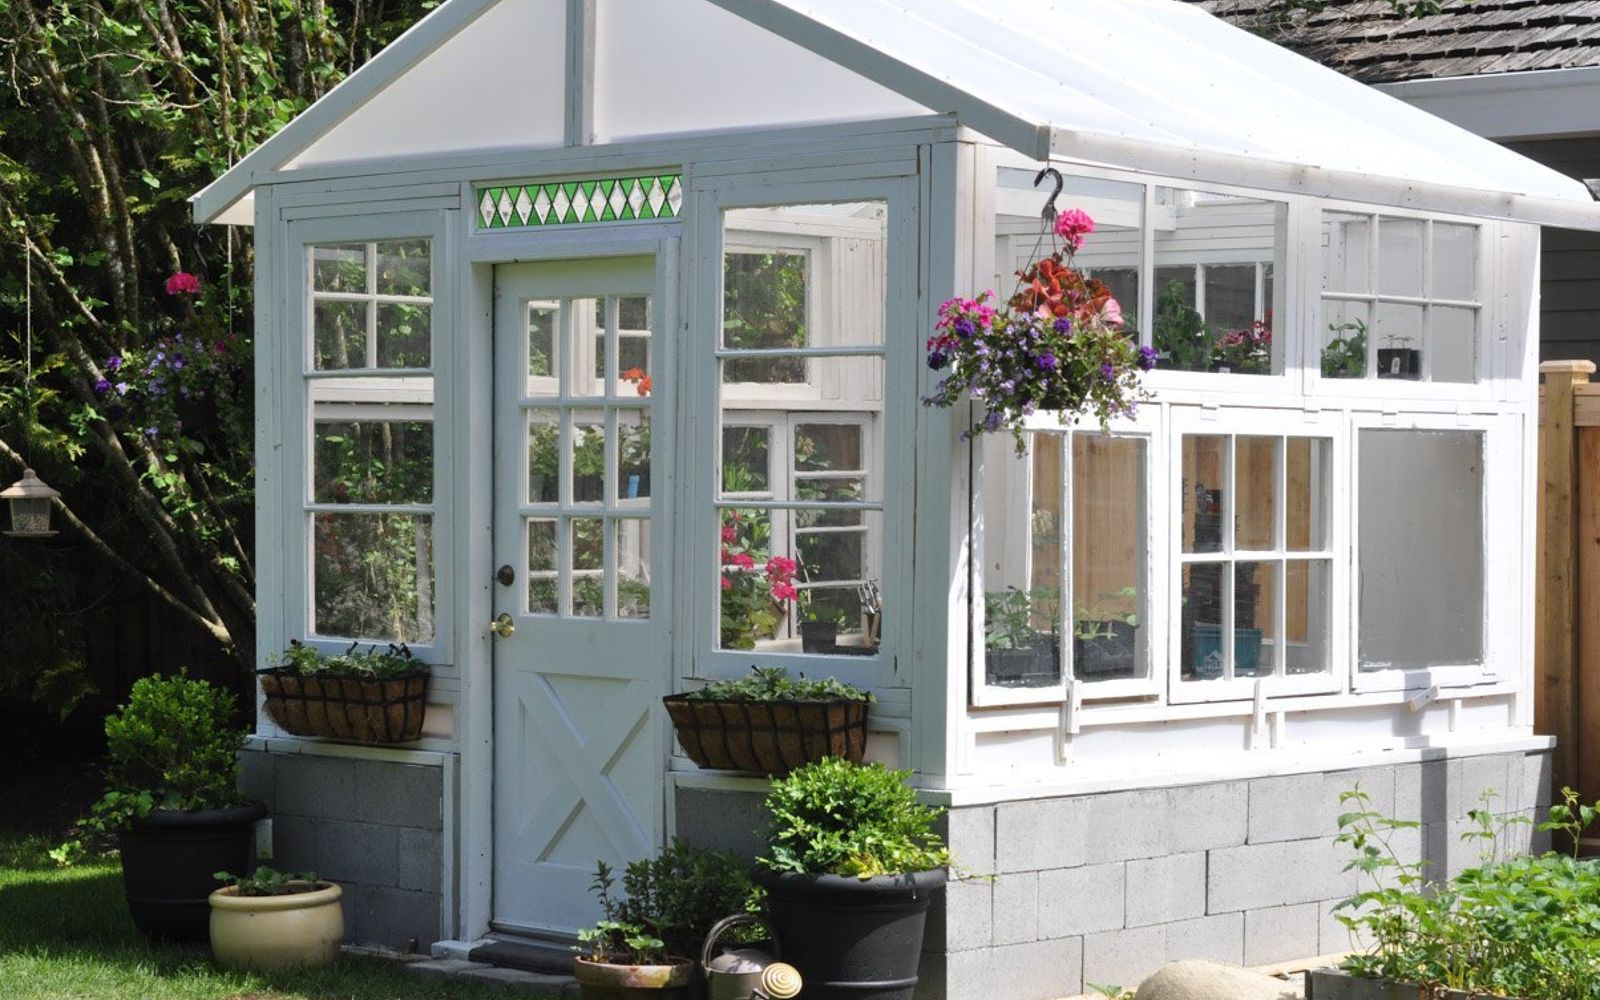 s wait they did what in their backyard , outdoor furniture, outdoor living, Build a greenhouse from vintage windows